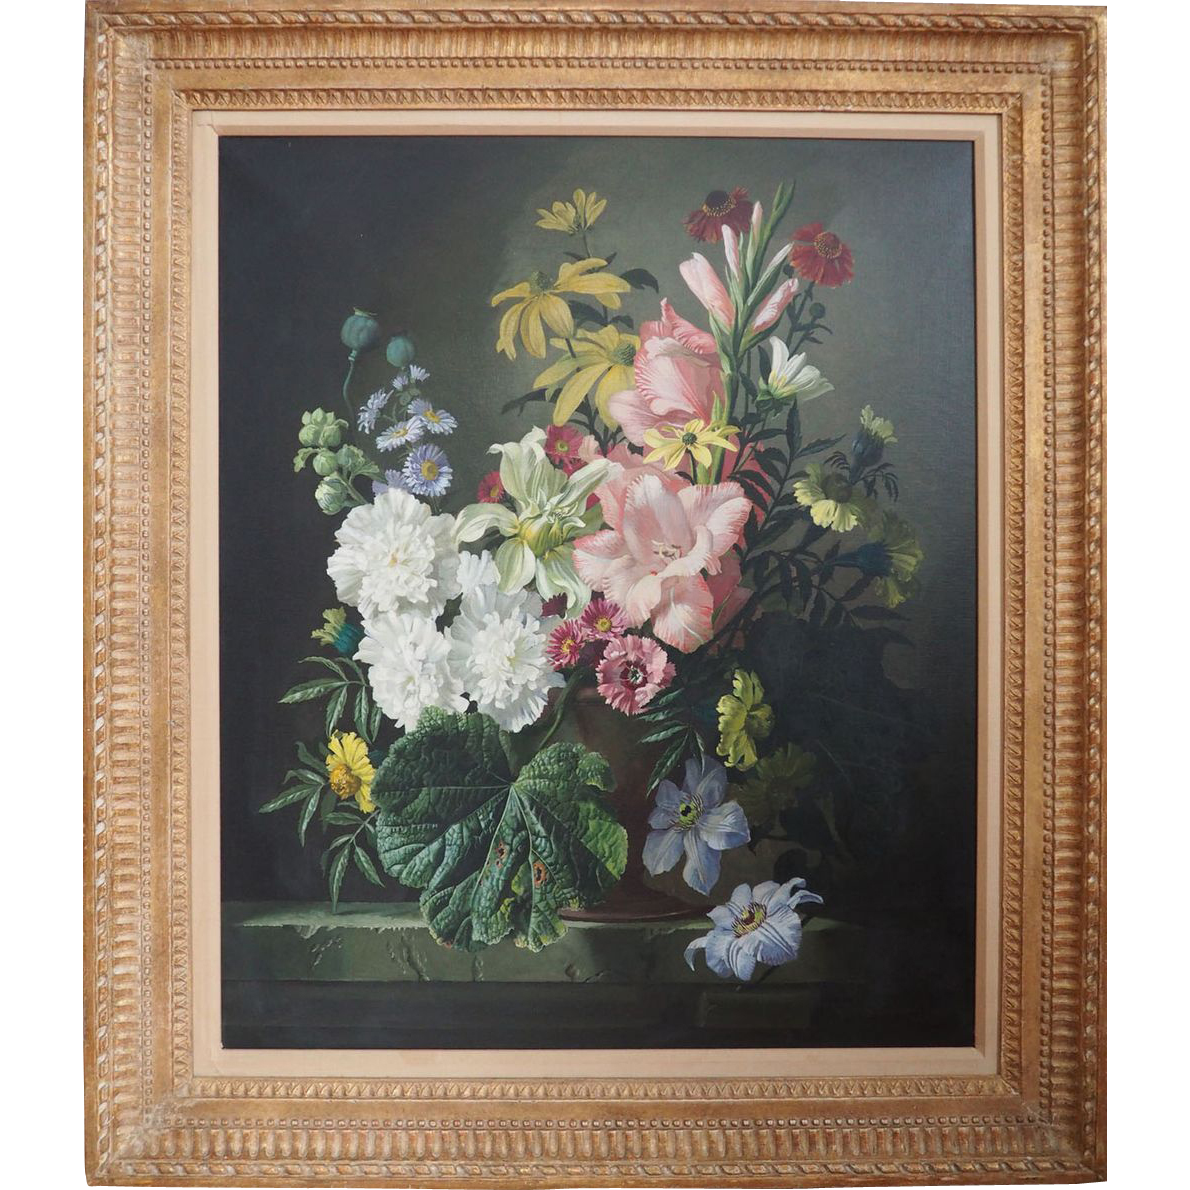 Flowers floral still life original vintage oil painting by Gerald Cooper